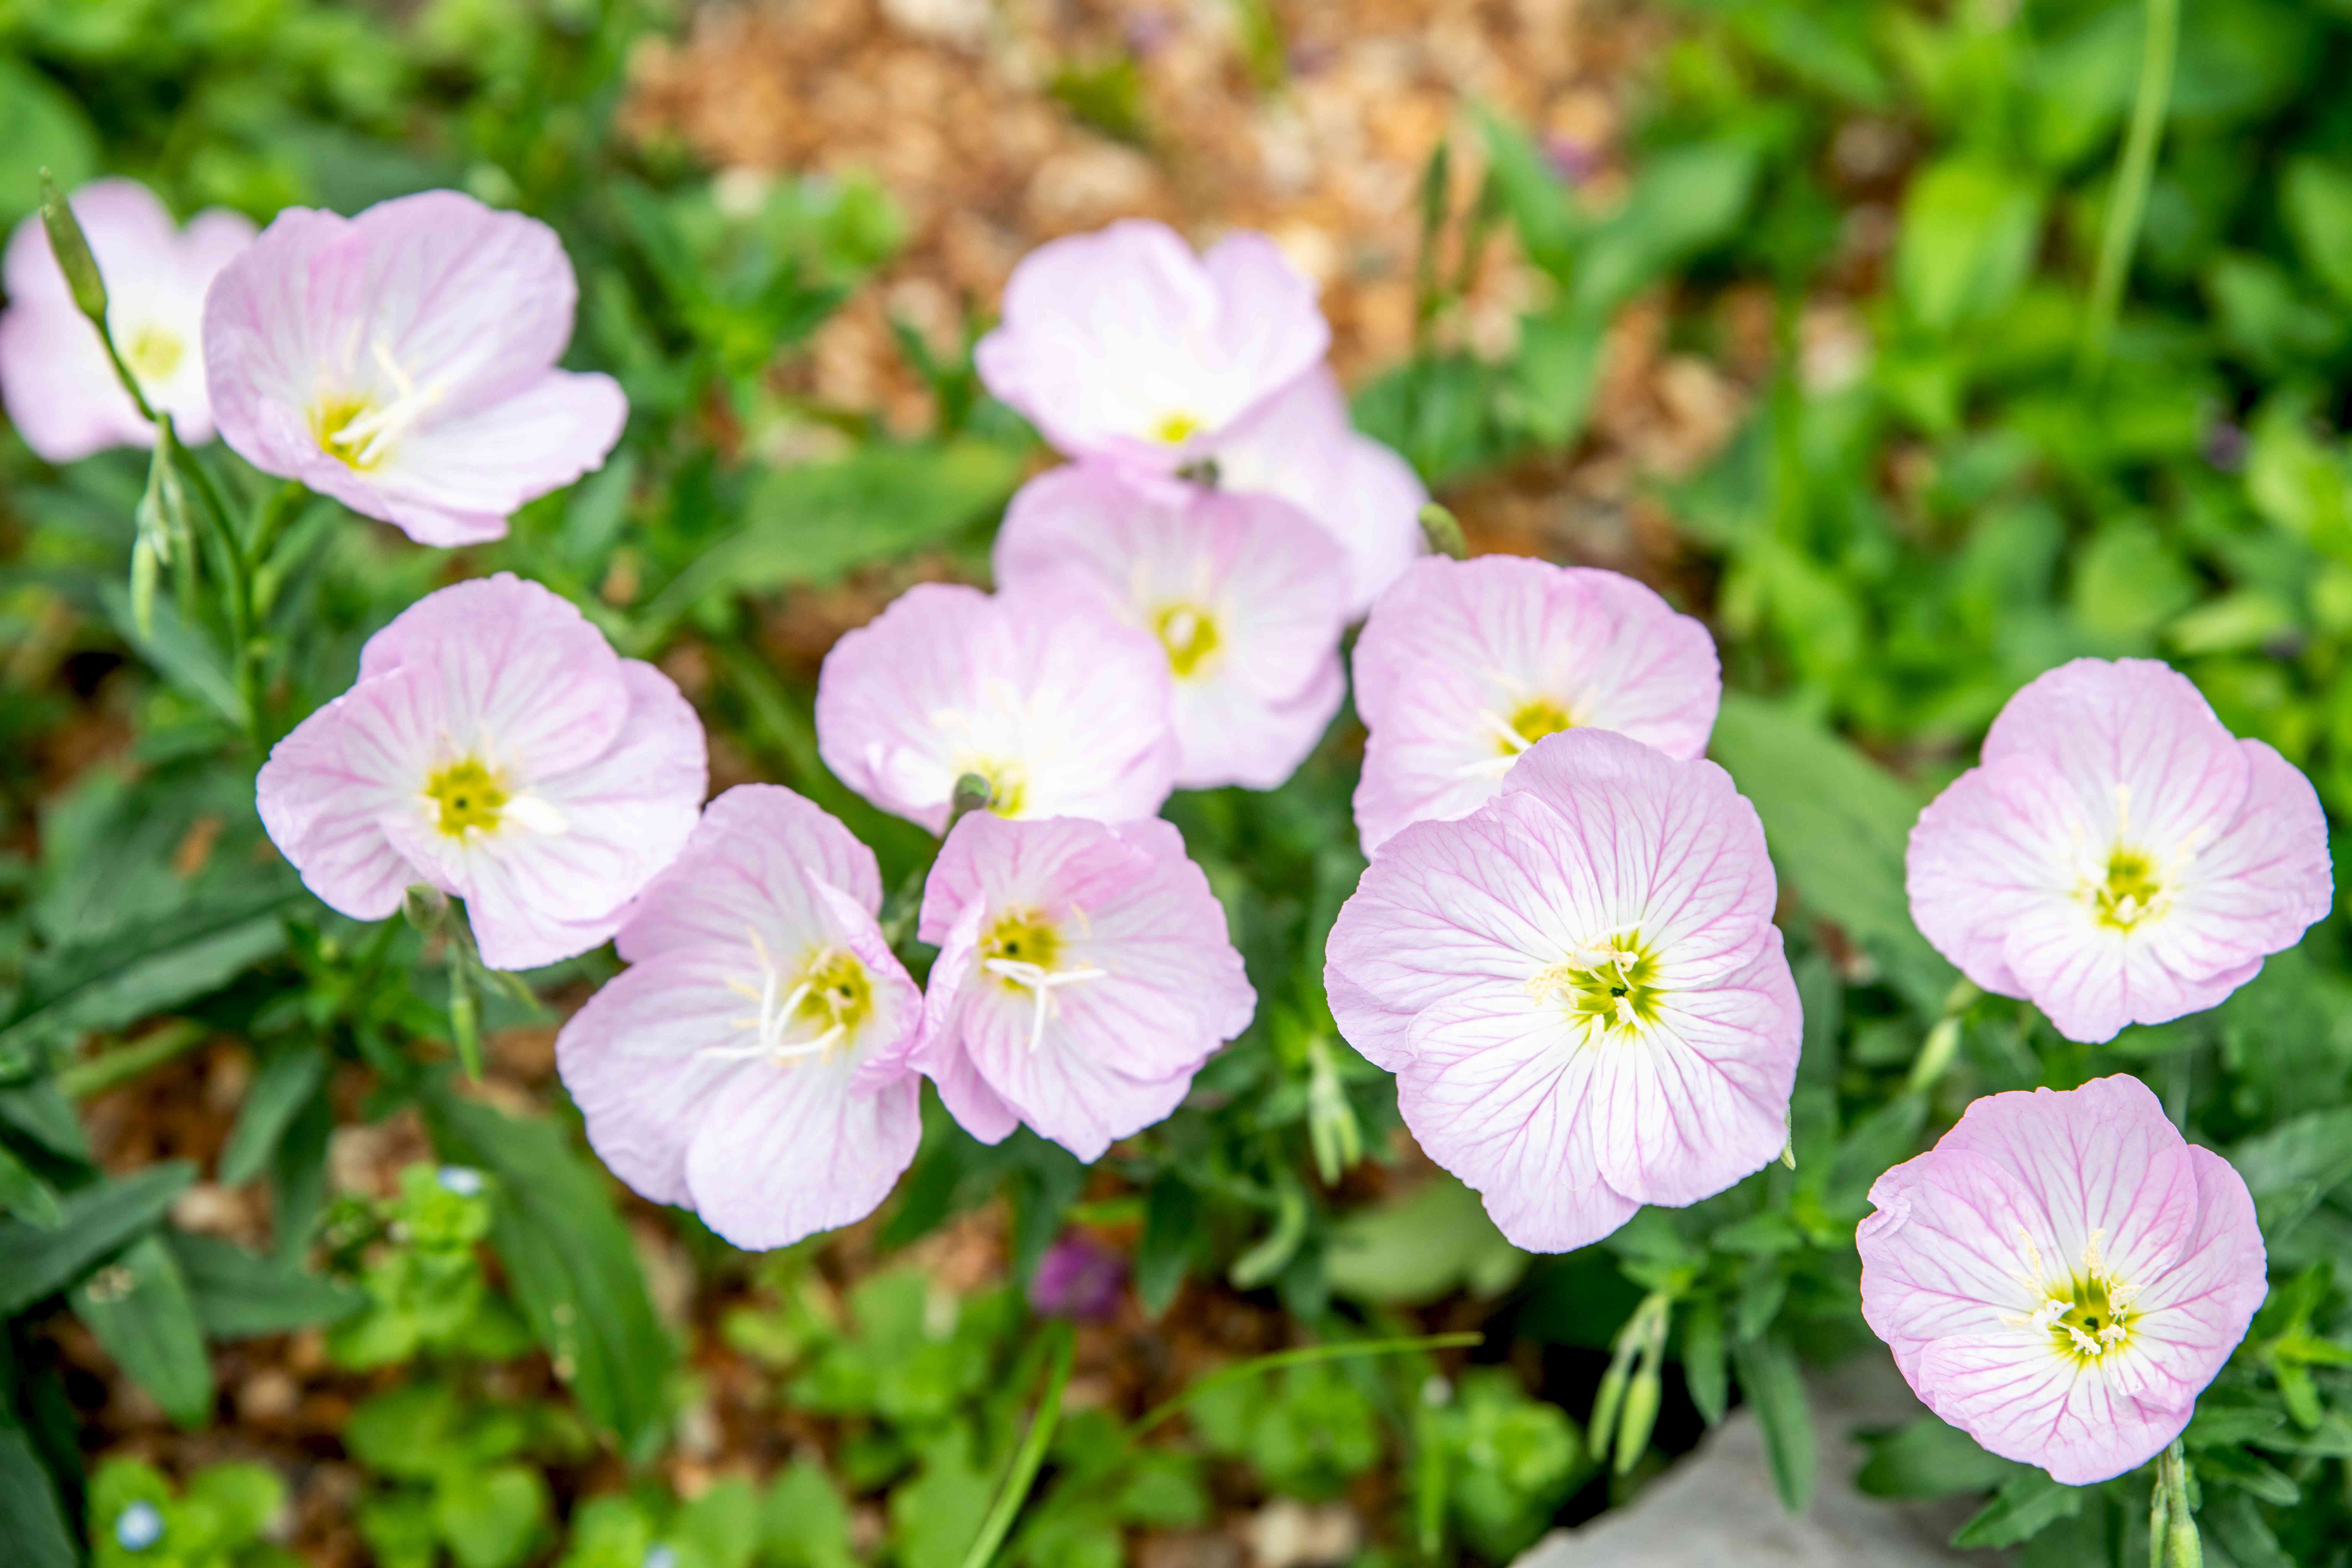 Pink evening primrose flowers with pale pink and white overlapping petals with yellow-green centers